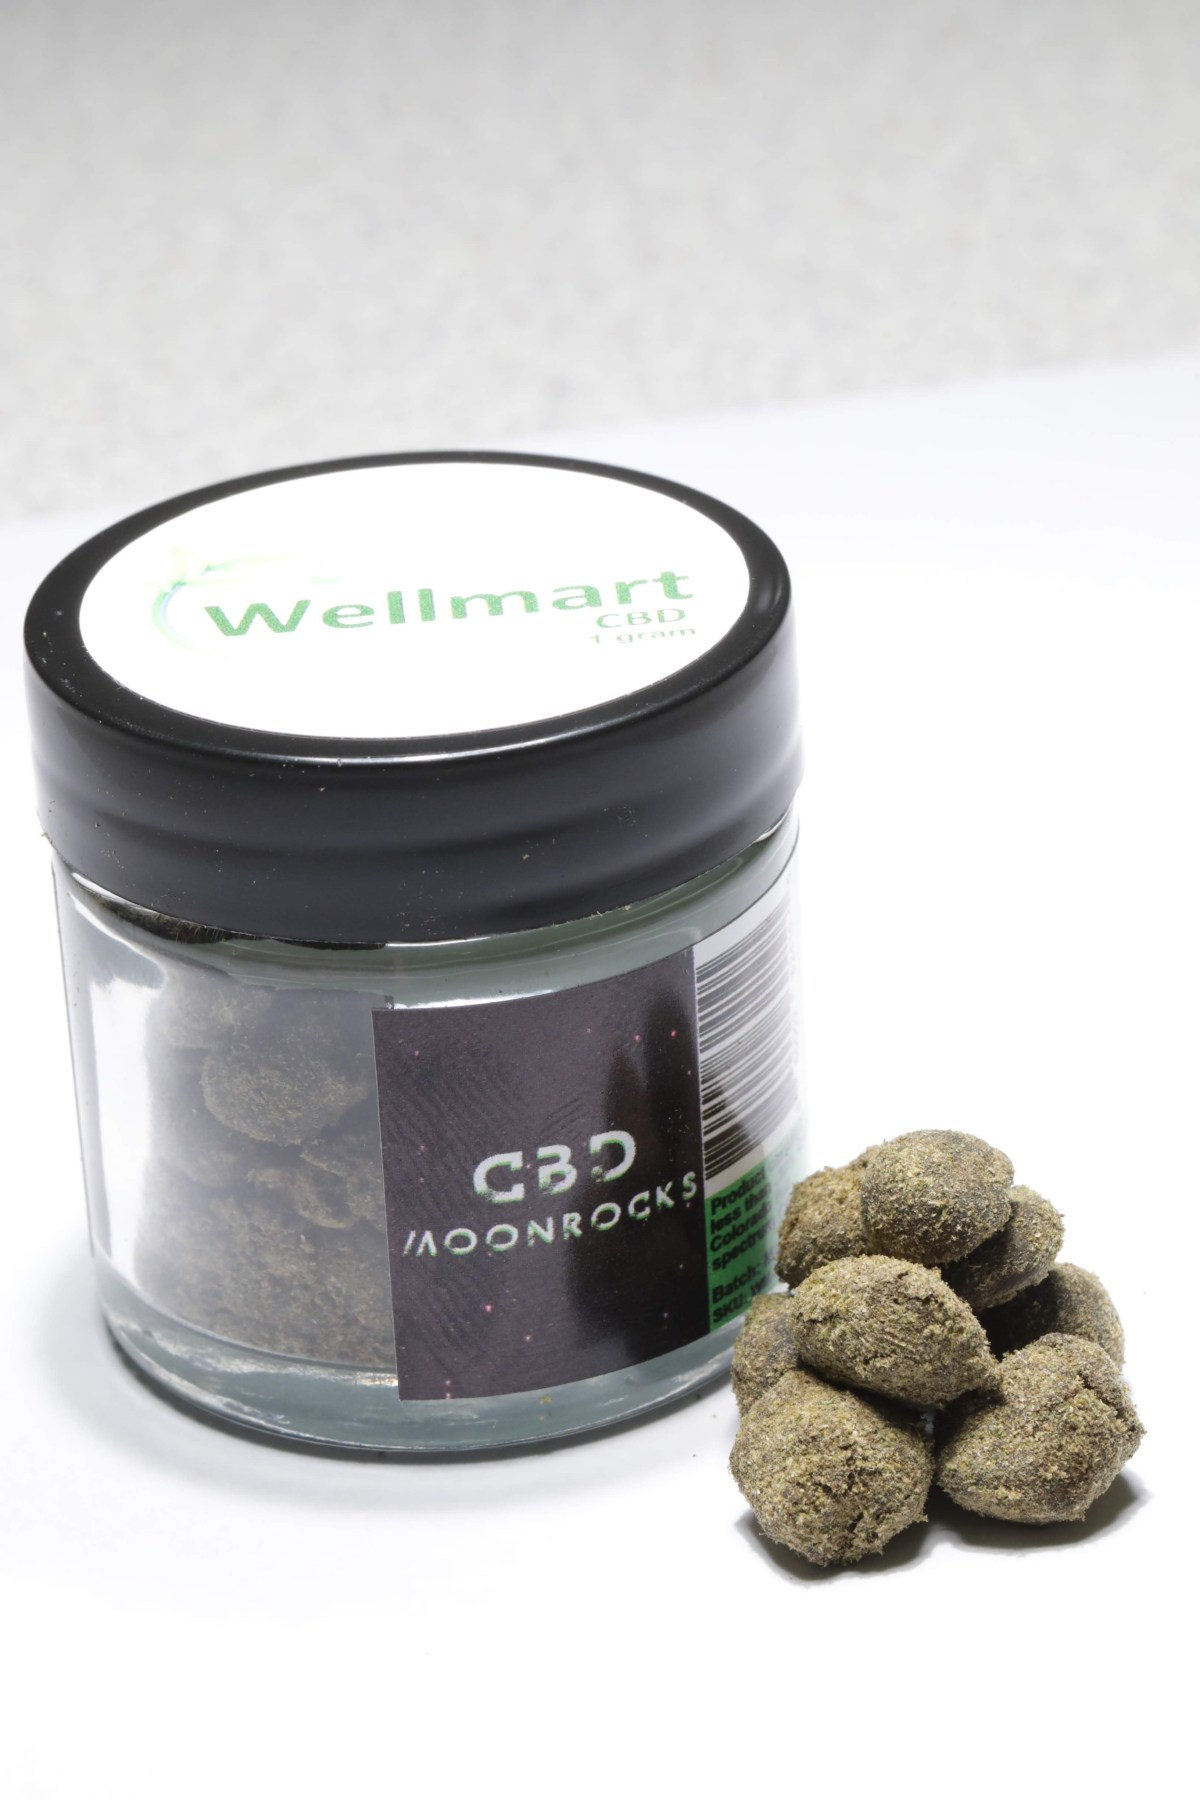 cbd moon rocks next to a WellmartCBD jar